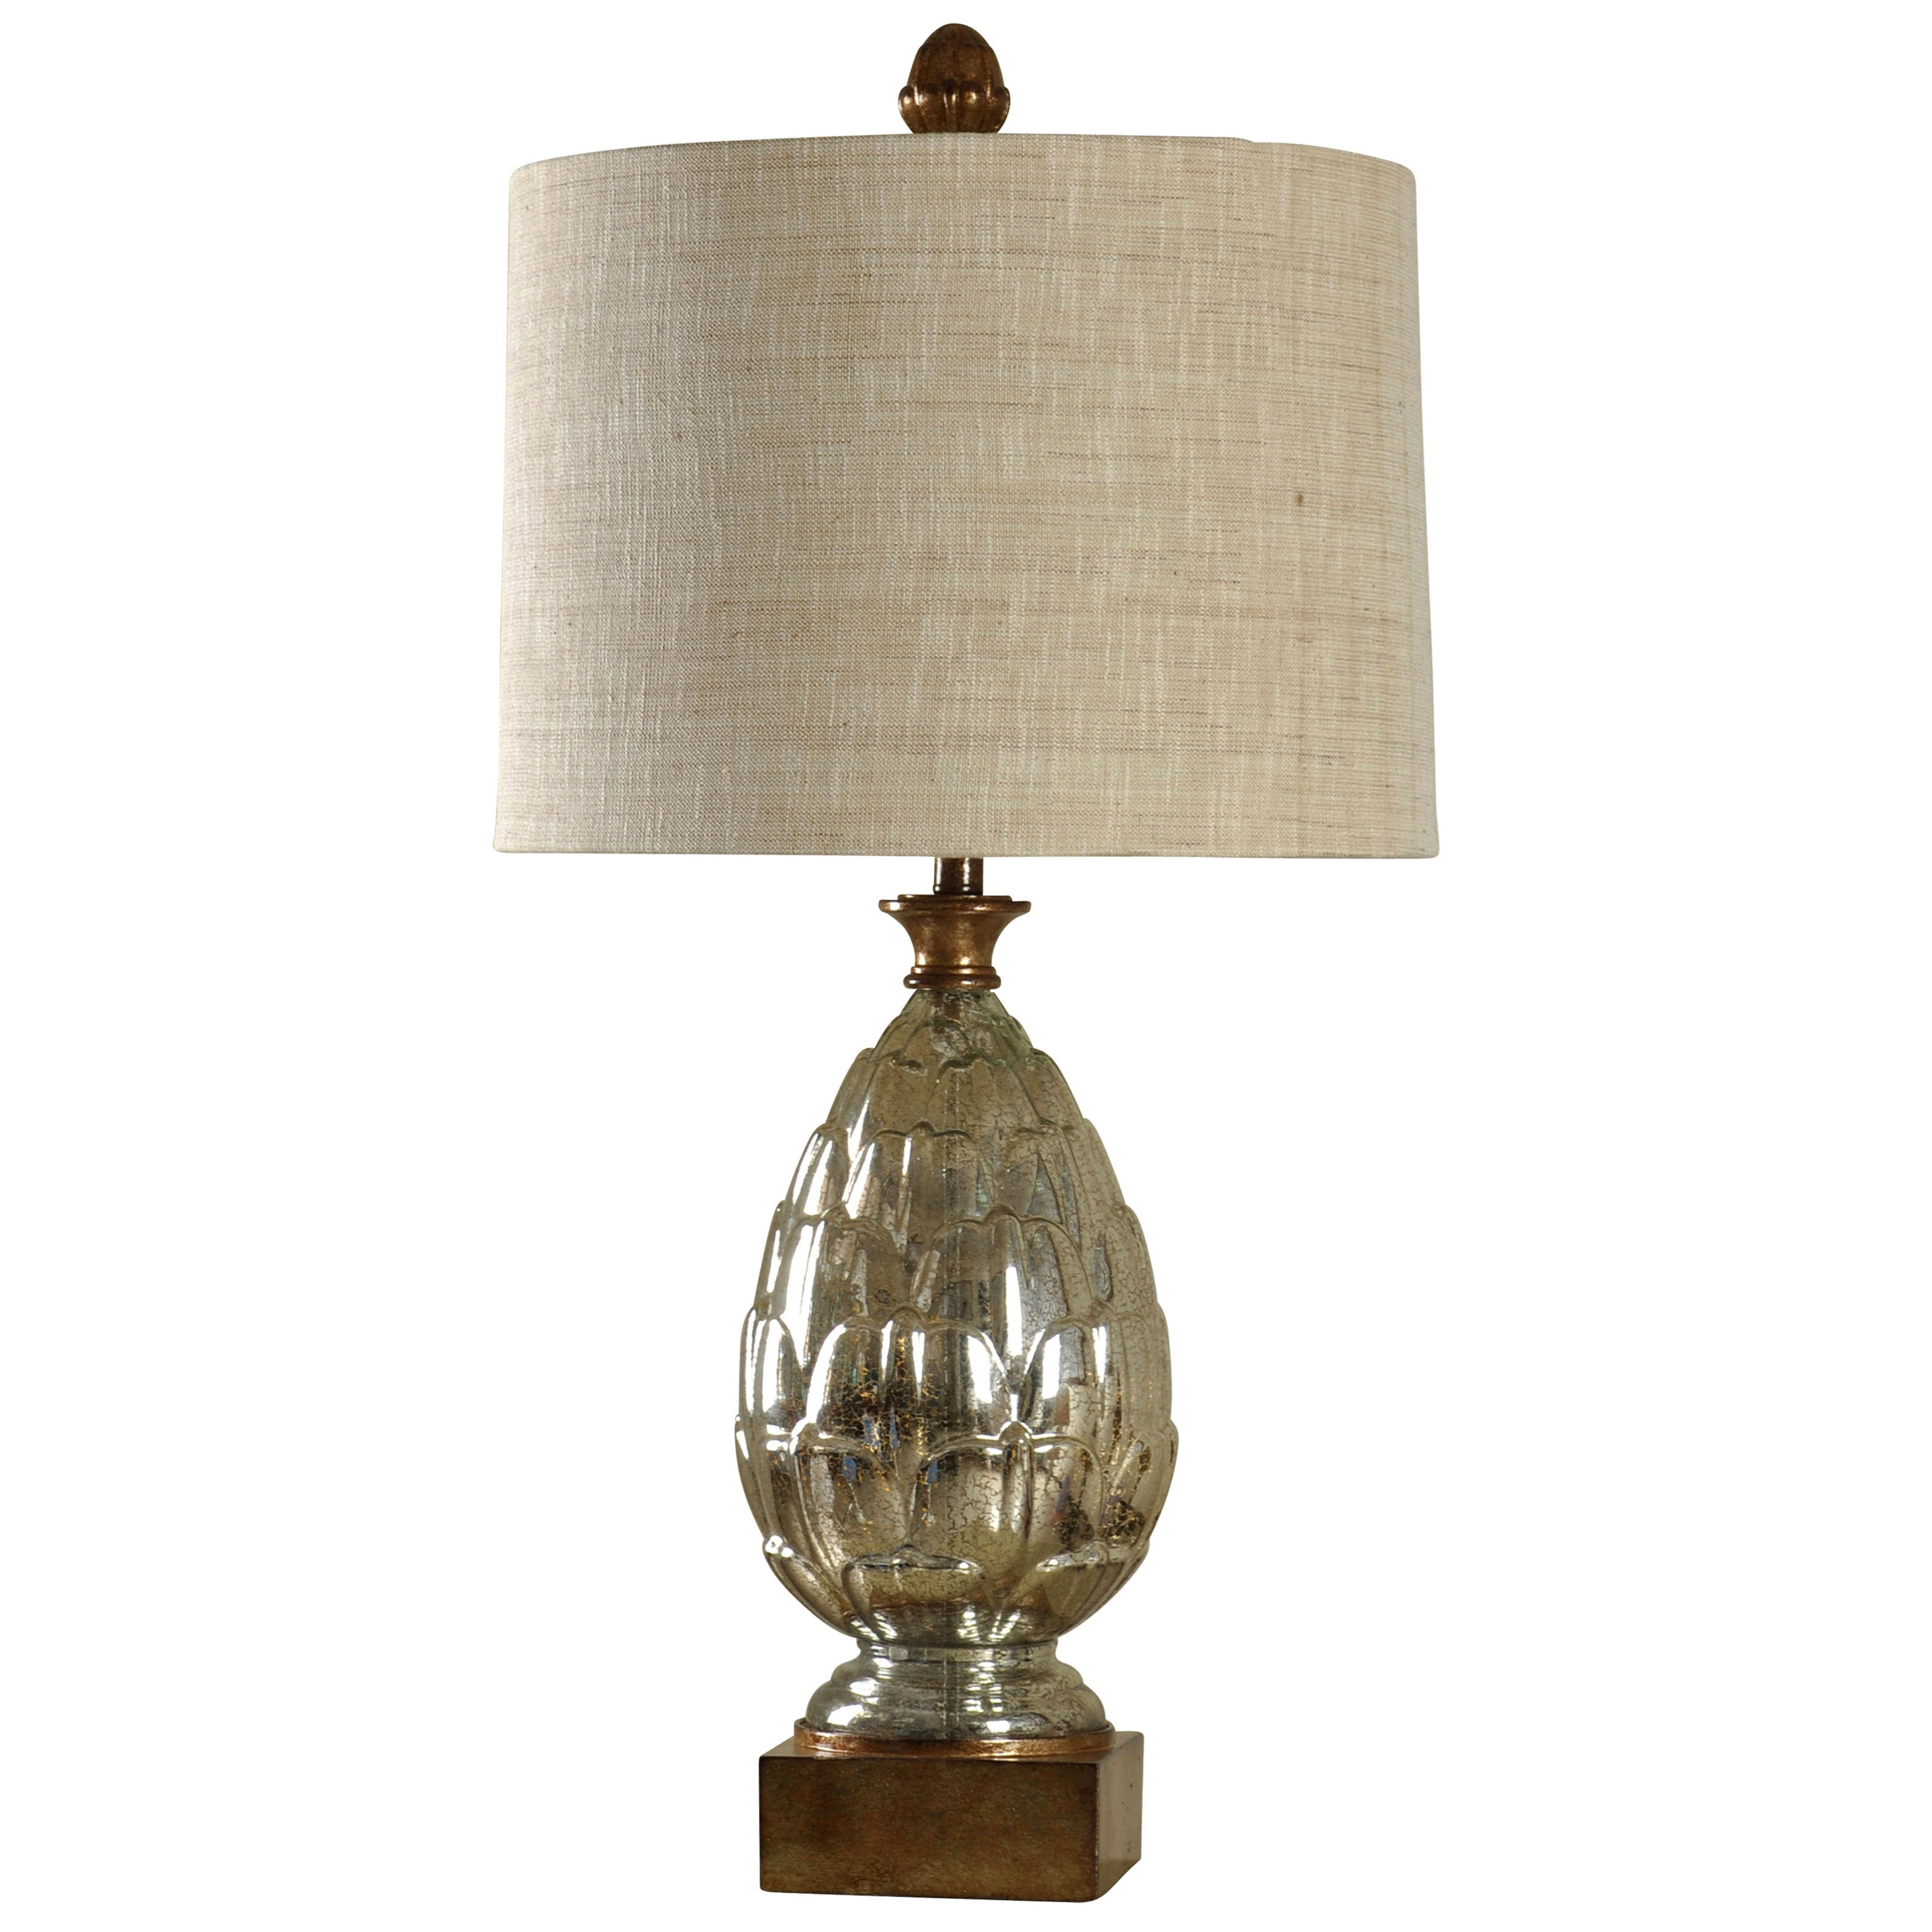 Marvelous StyleCraft Lamps Transitional Mercury Glass Table Lamp   Item Number: L38478